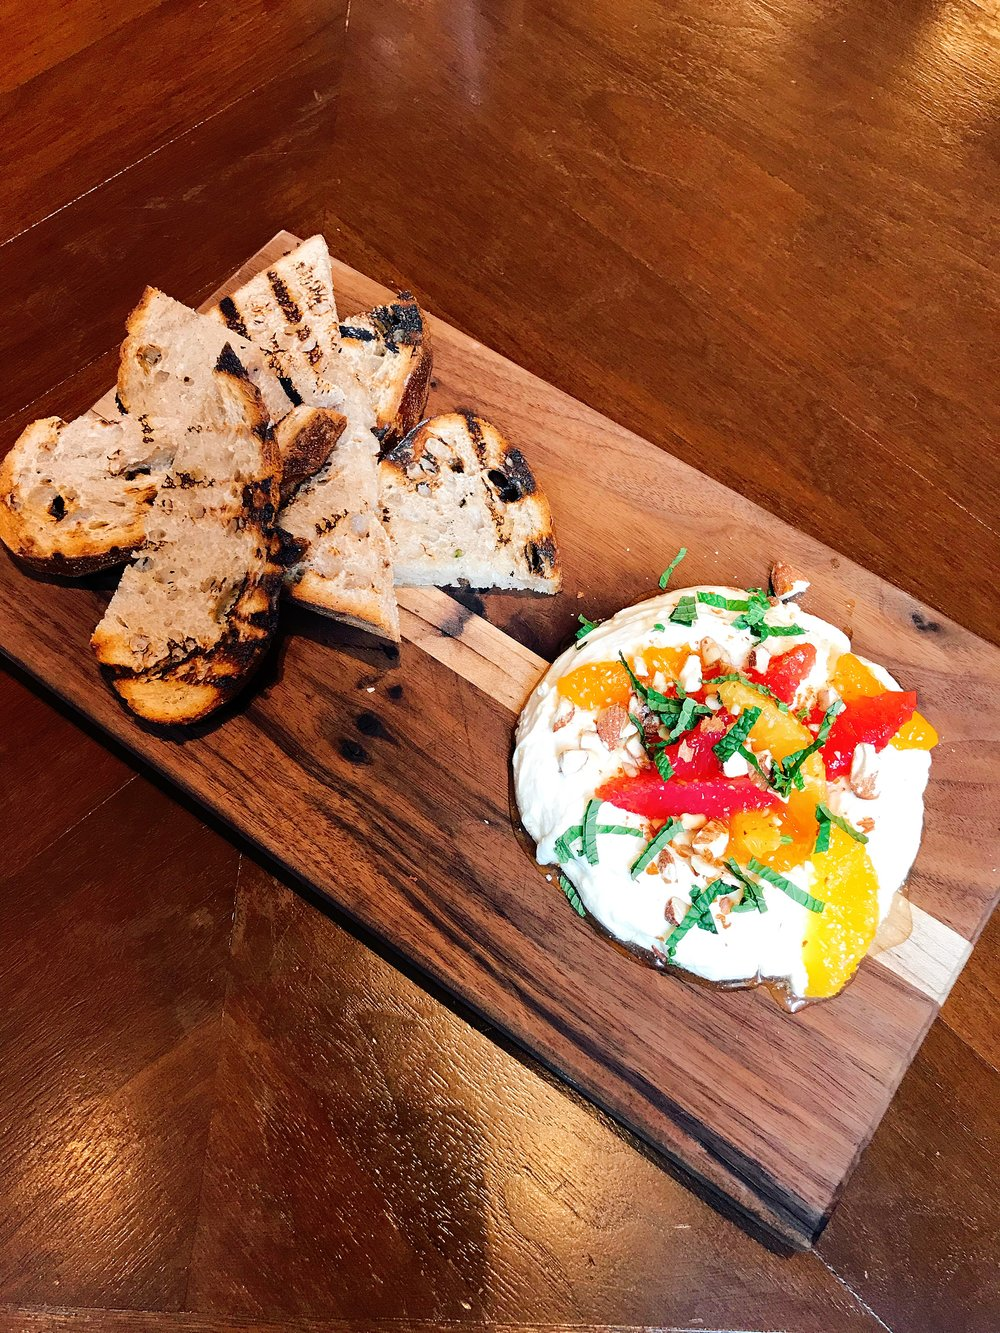 Fruit and Cheese featuring Sweet Grass Dairy Lil' Moo served with citrus, Tennessee honey, almonds, mint and served with a side of toast